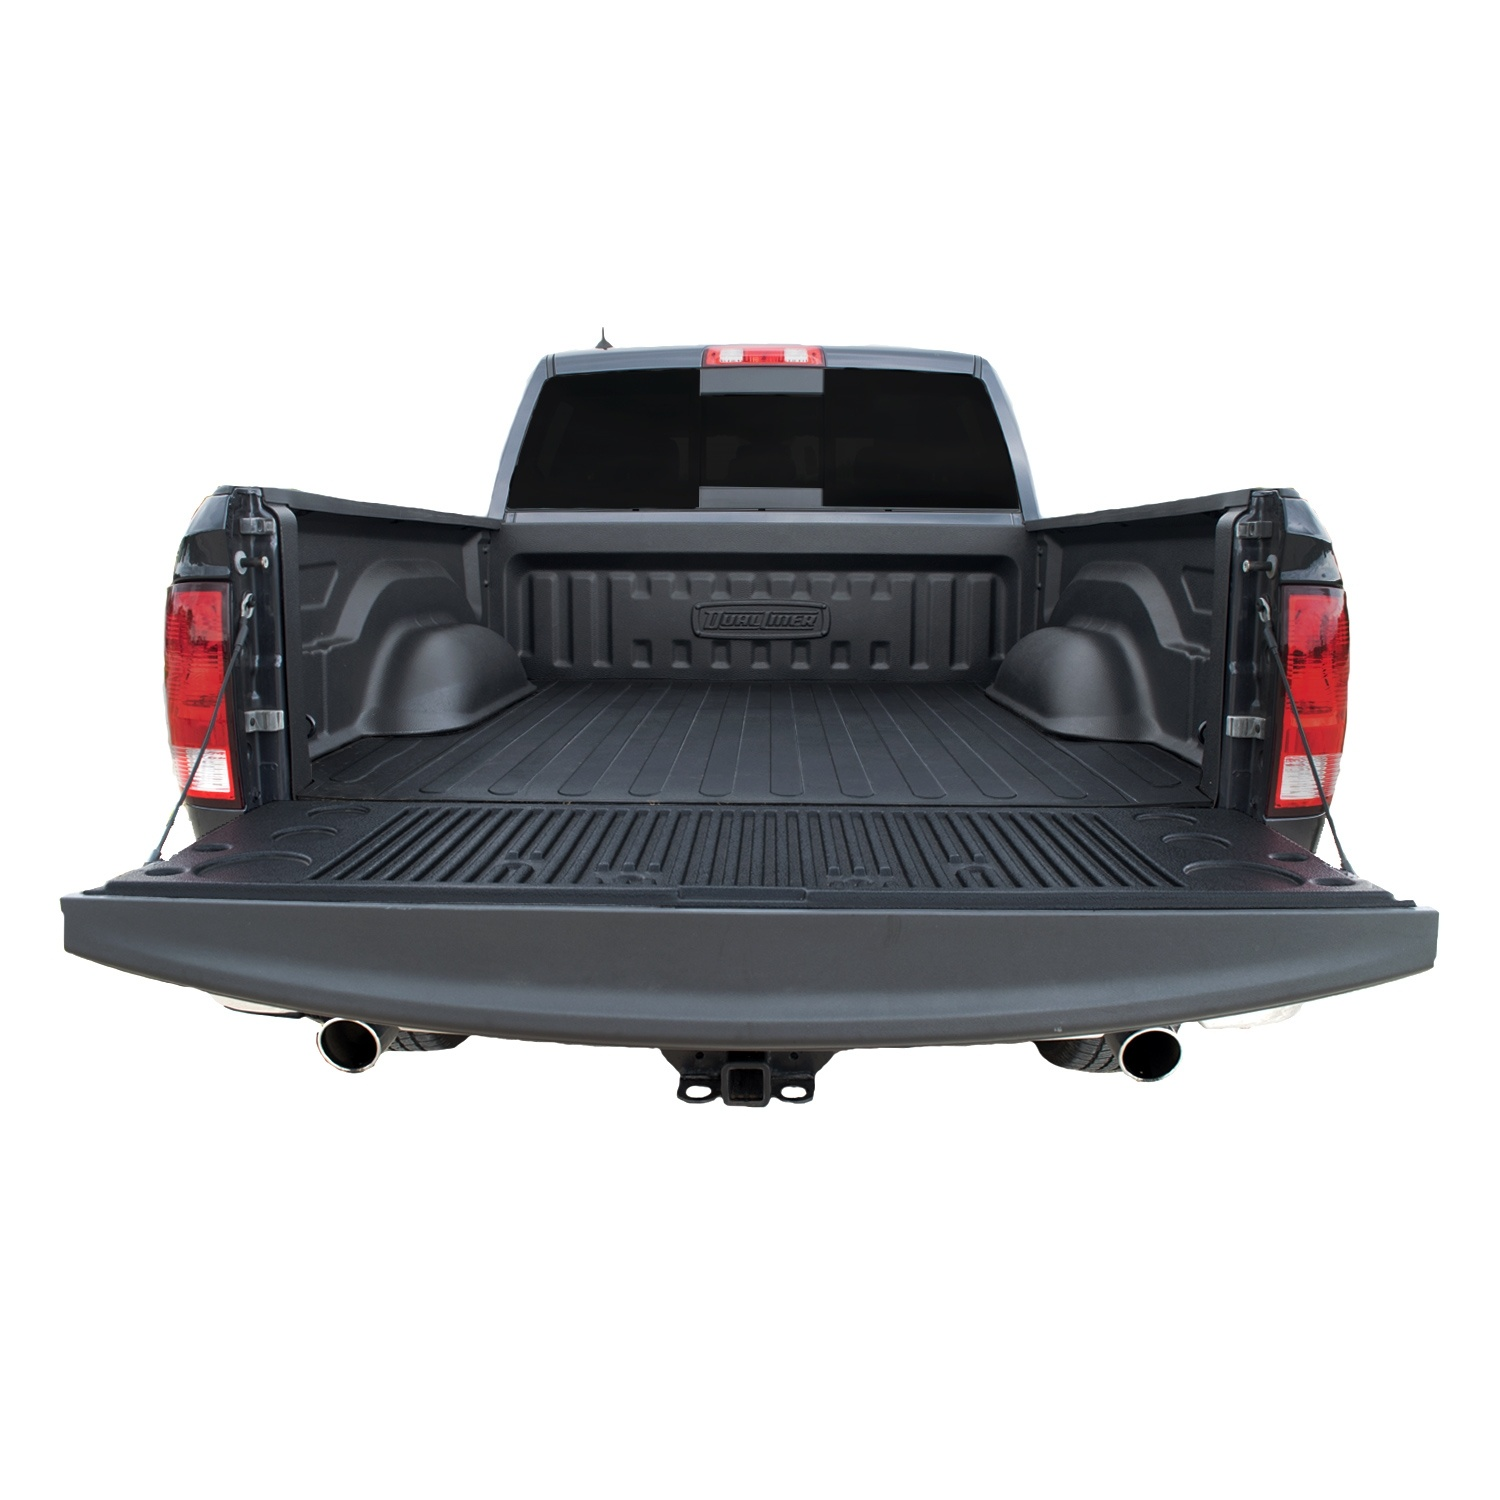 Dodge Ram Truck Bed For Sale >> 18 19 Classic Body Dodge Ram 1500 5 7 Bed Liner For Sale